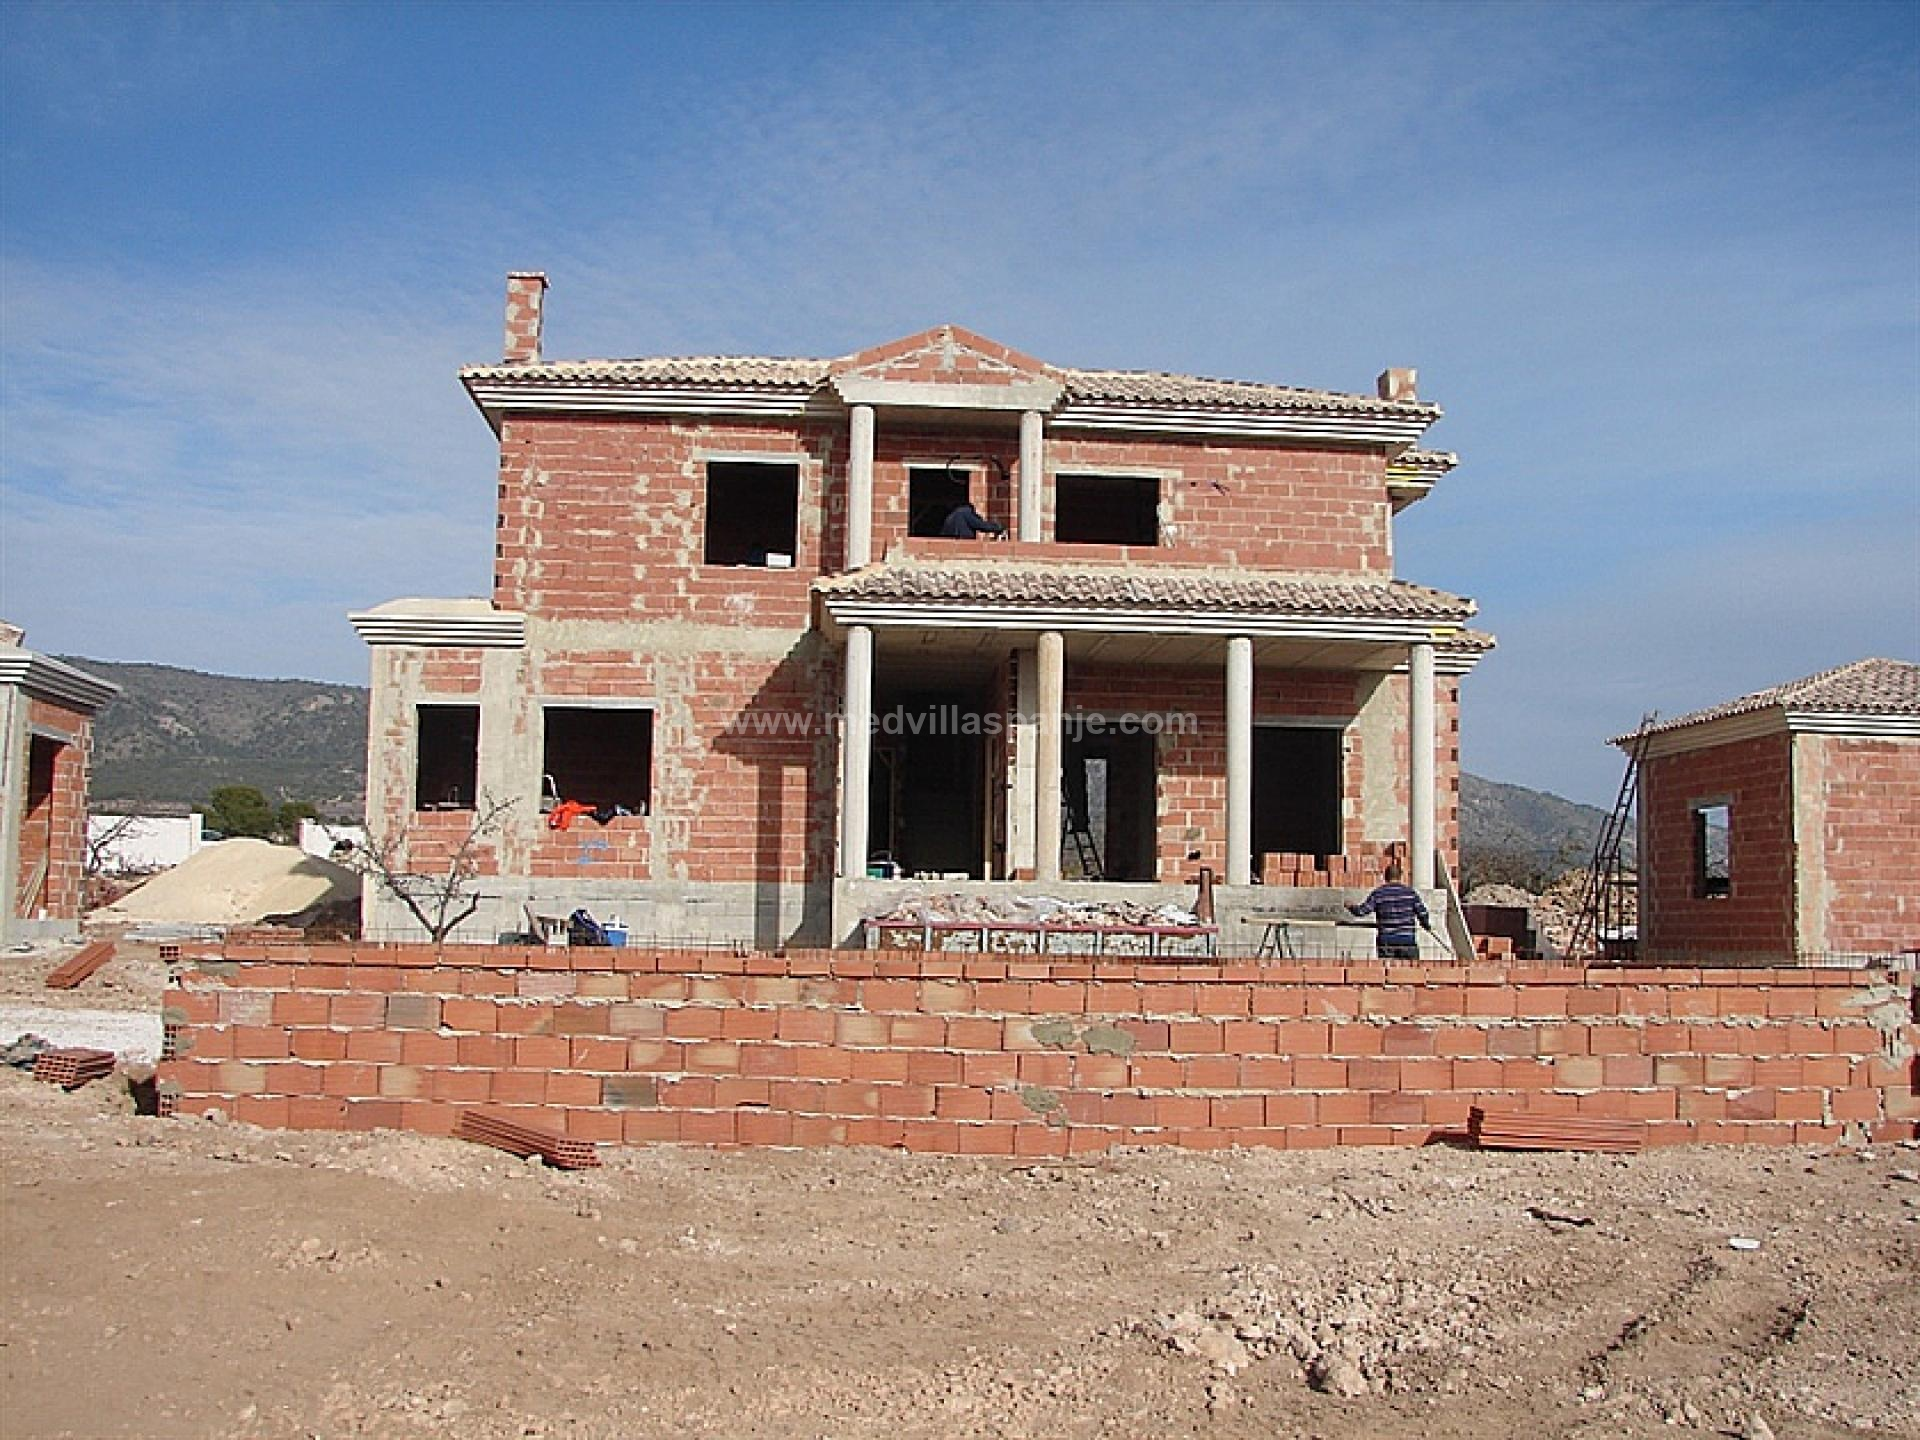 Luxury New Villas with Pool inc. land, licences & legalities in Alicante, Pinoso in Medvilla Spanje